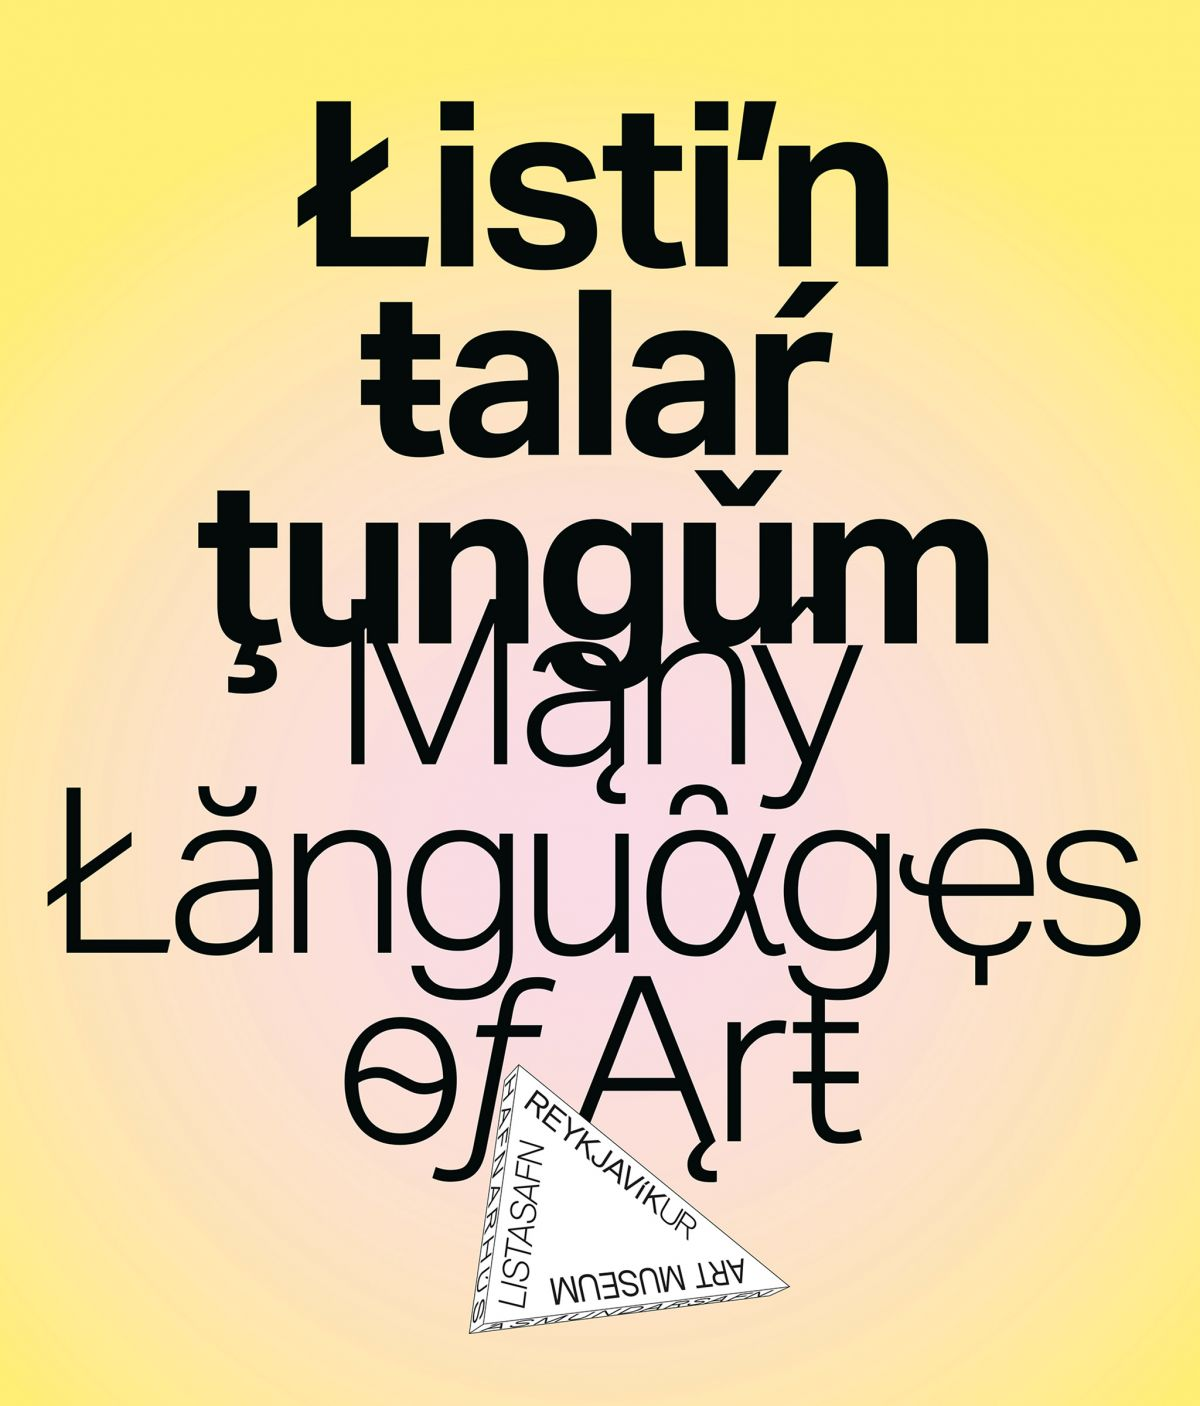 Many Languages of Art: Gallery Talk in French